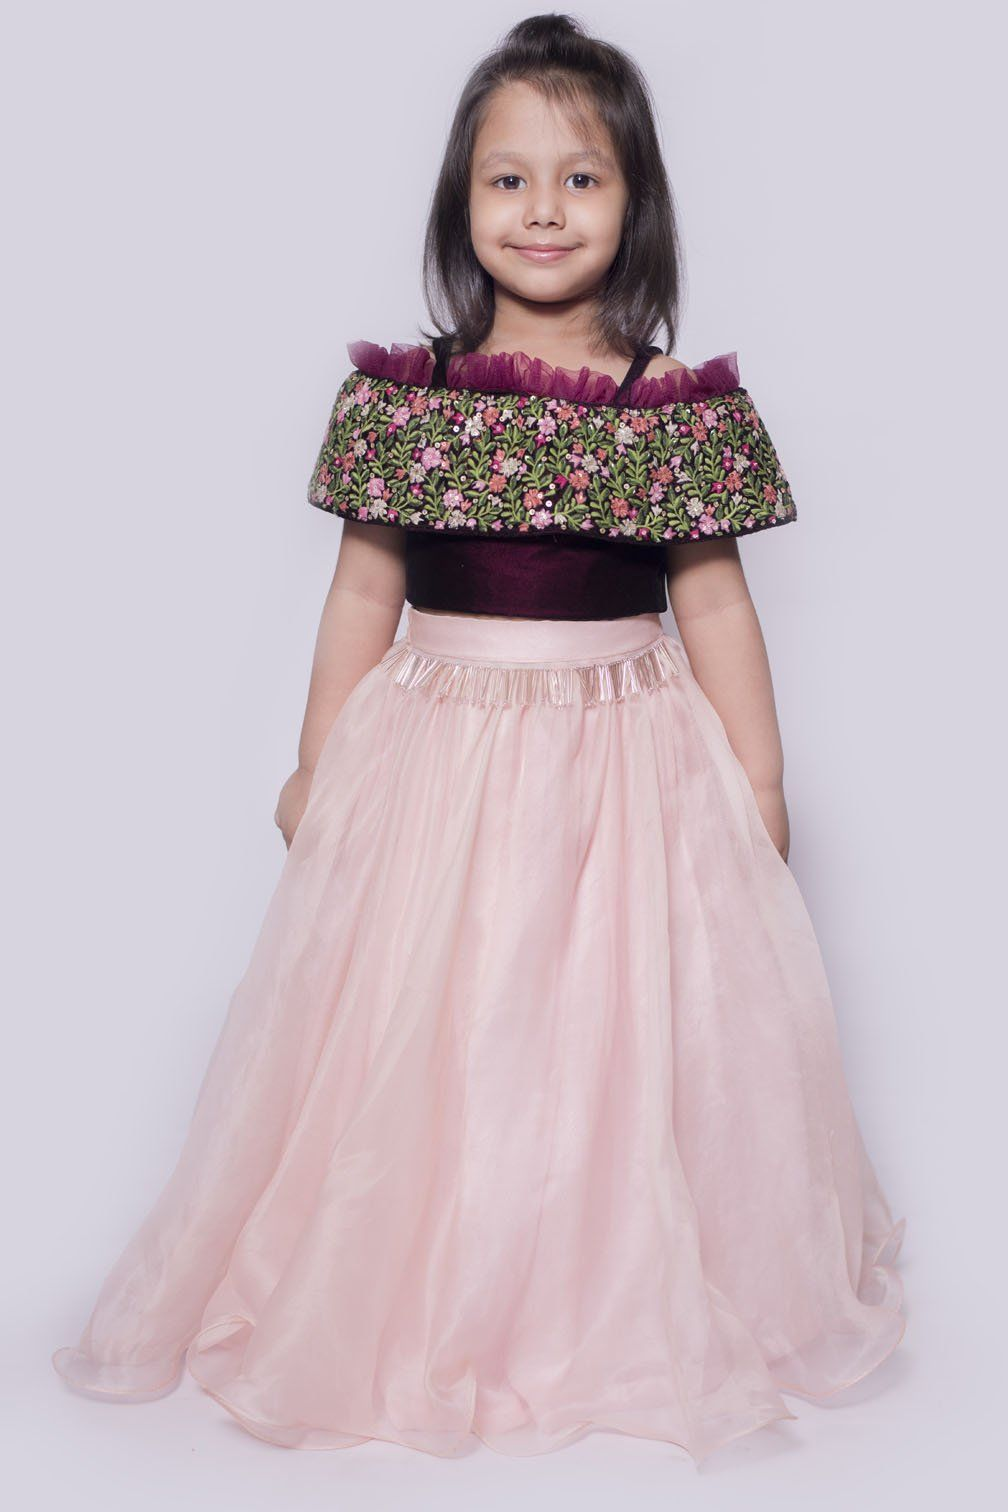 Elegant Lehenga For Princess #disney #princess #pink #kids